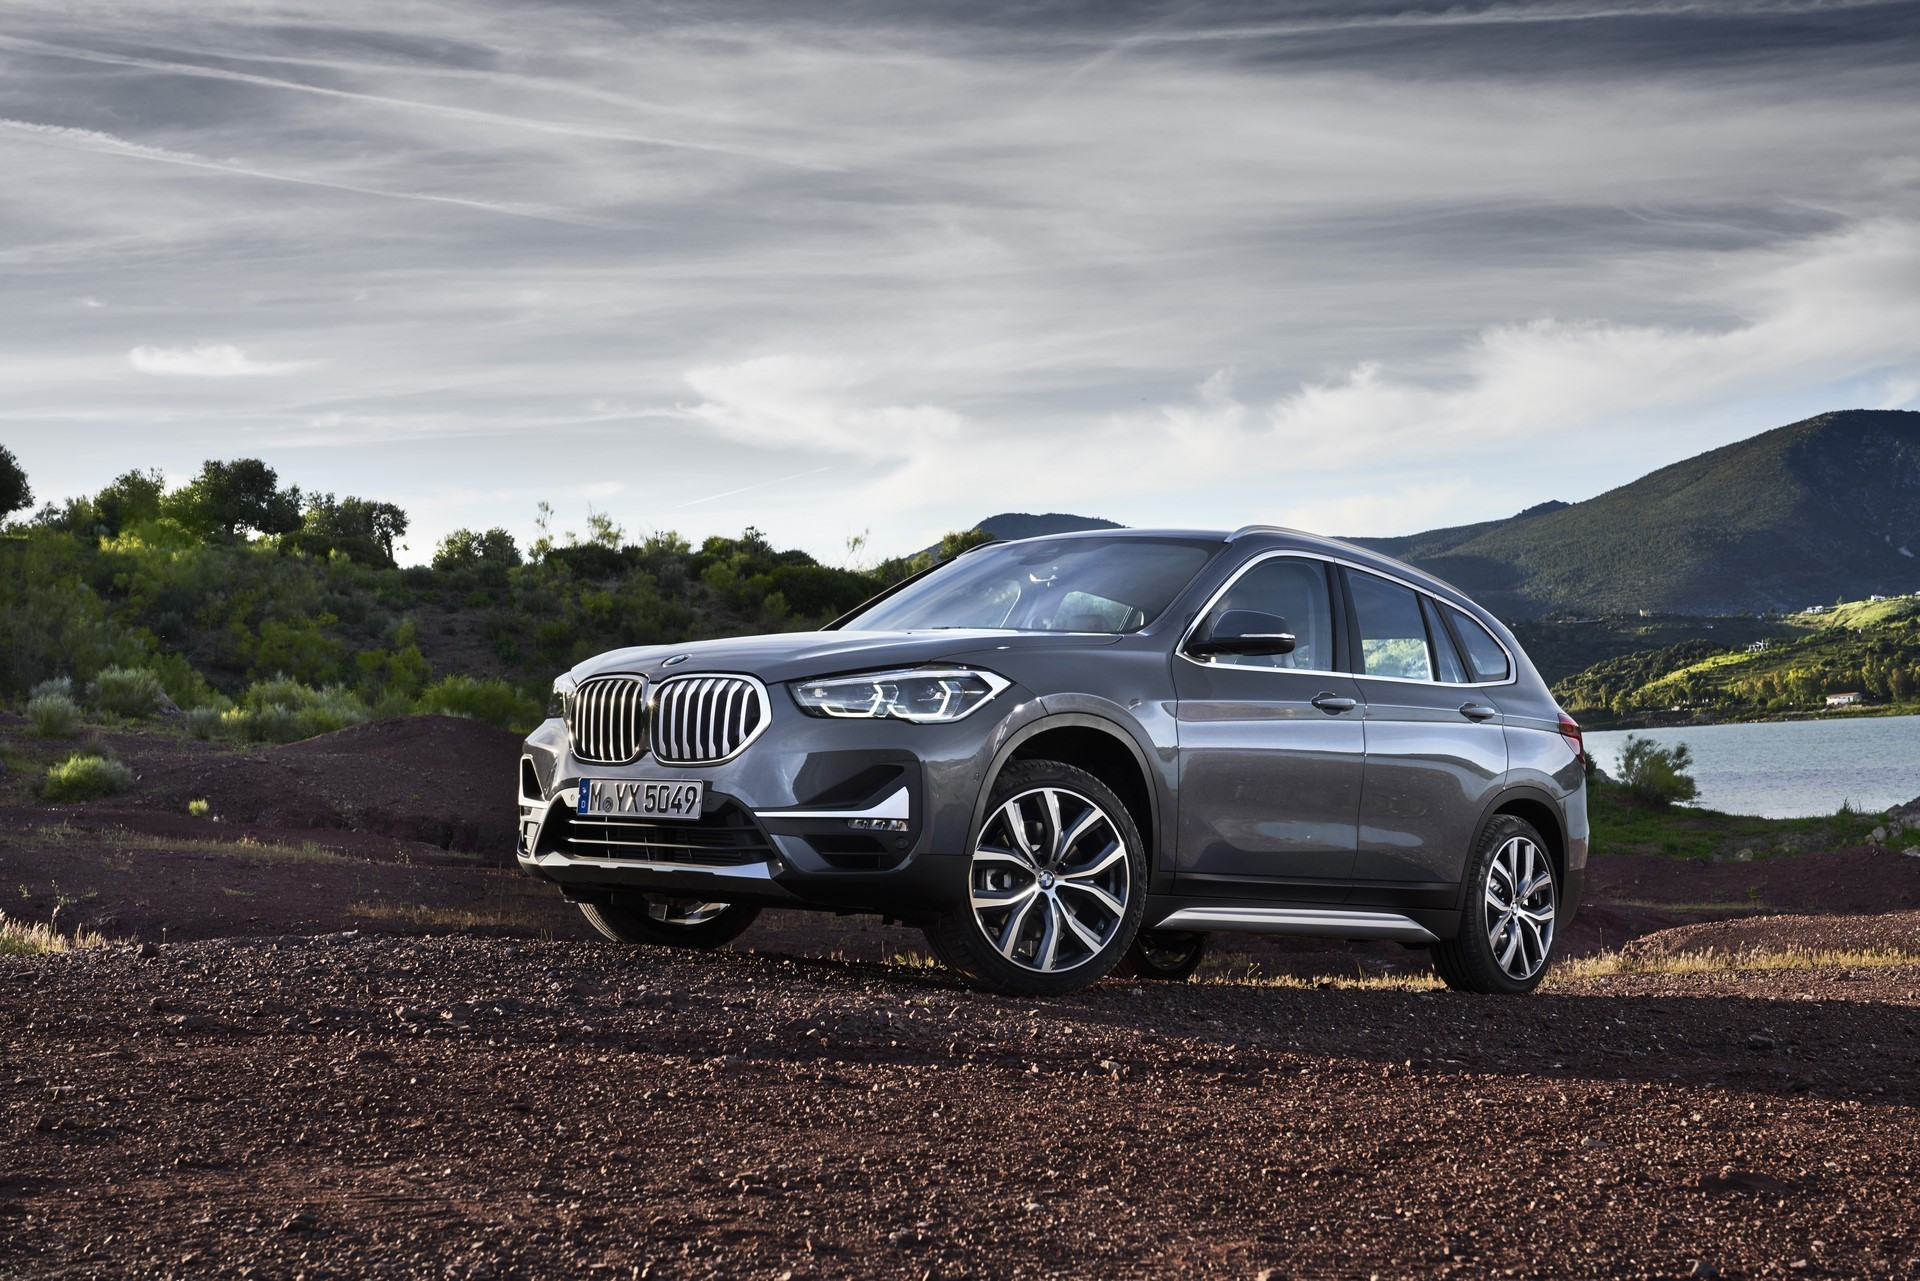 BMW-X1-Facelift-2019-26